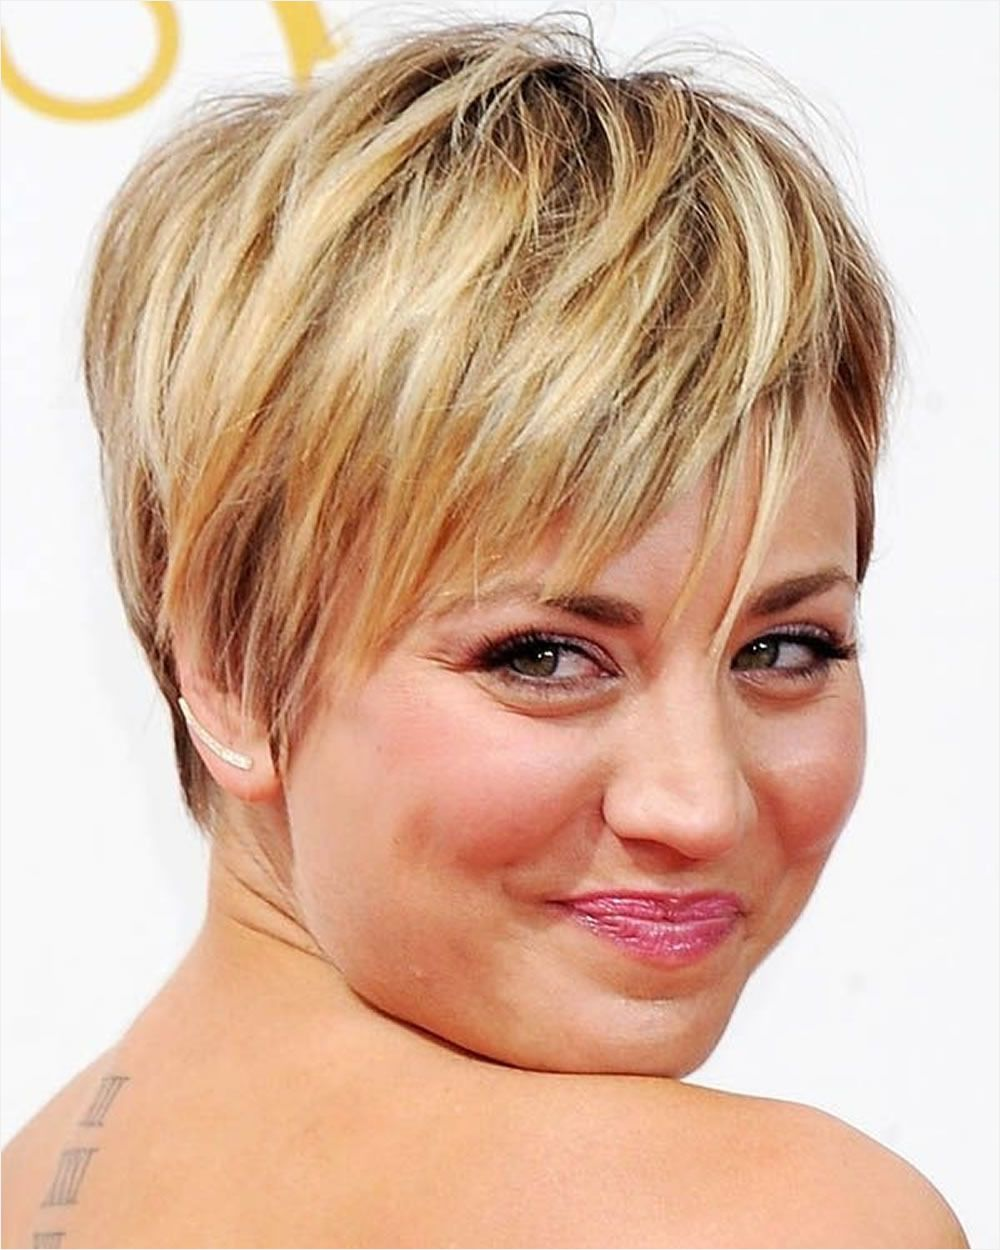 40 Most Flattering Bob Hairstyles For Round Faces 2021 Hairstyles Weekly Round Face Haircuts Bob Hairstyles For Round Face Short Hair Styles For Round Faces